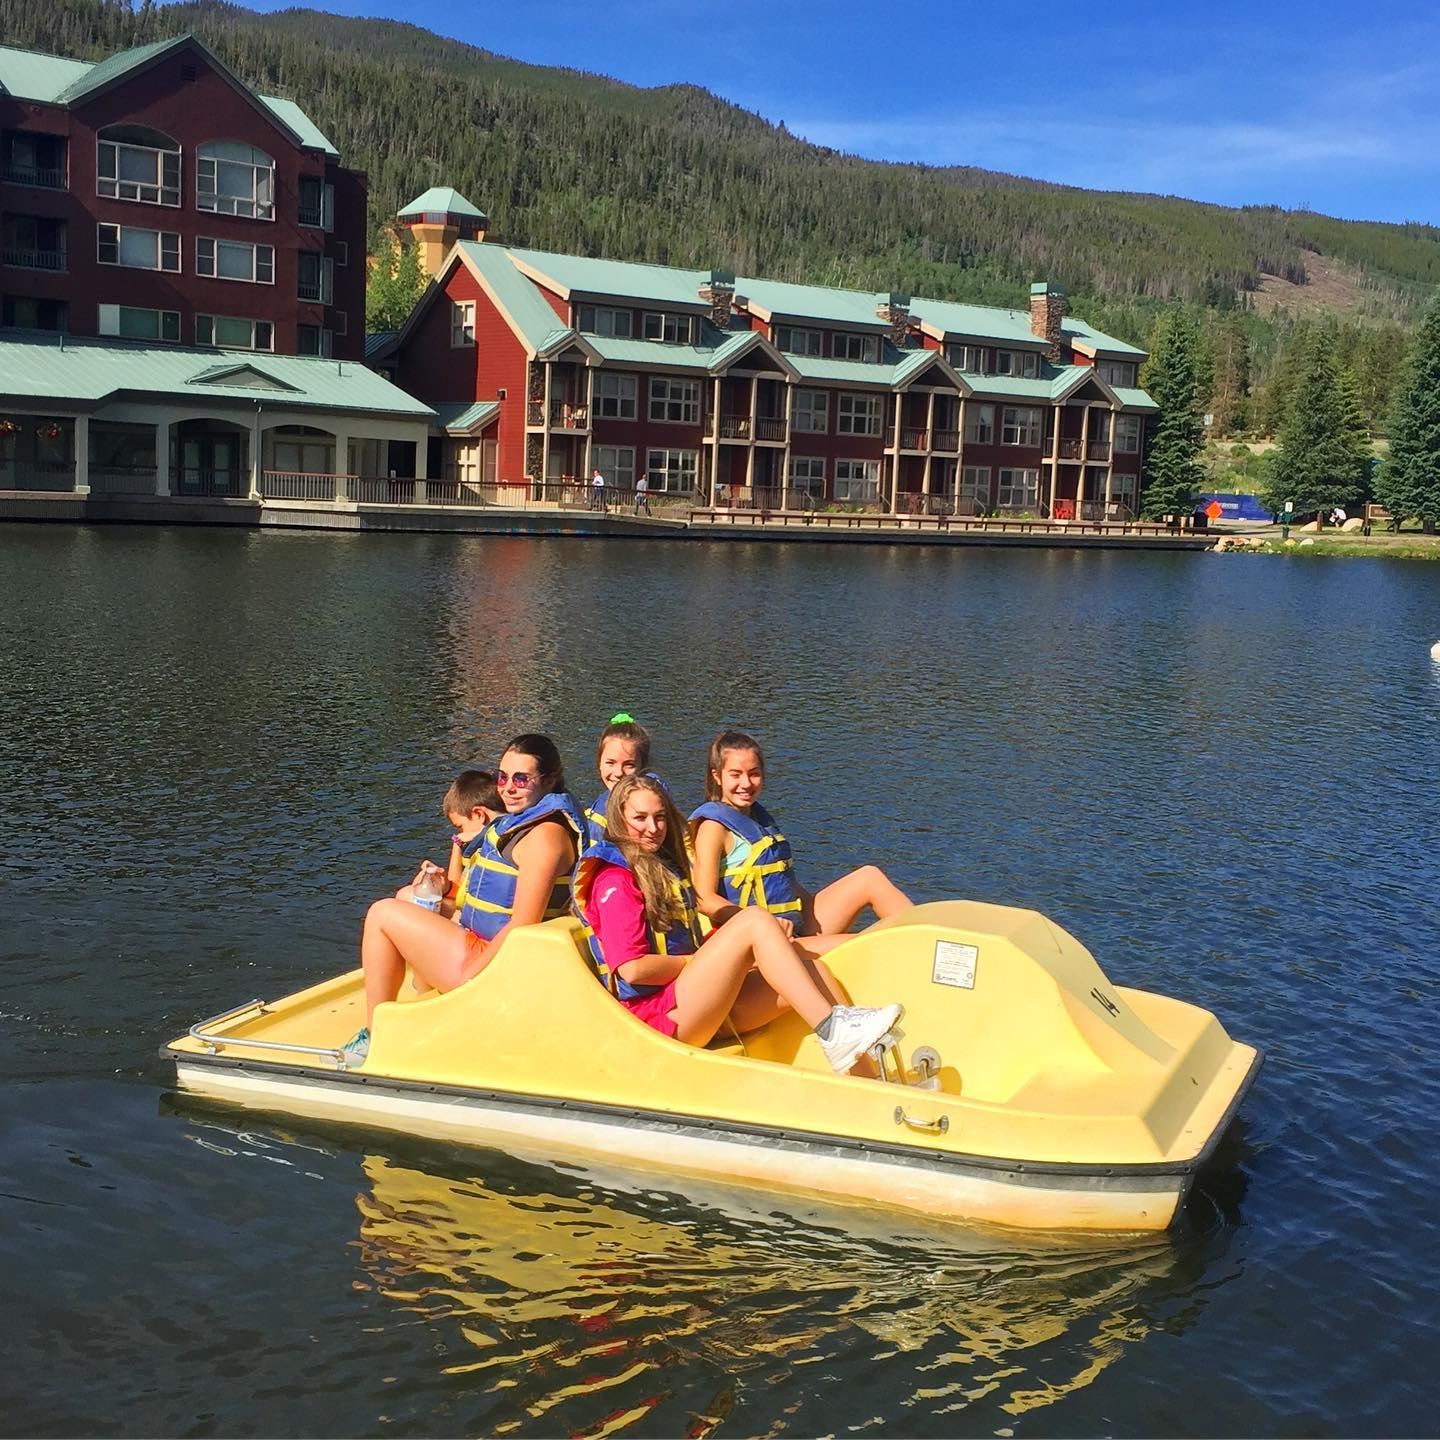 Paddle boats at Keystone Colorado are so much fun. The whole family had a blast! #paddleboats #keystonecolorado #familyfun